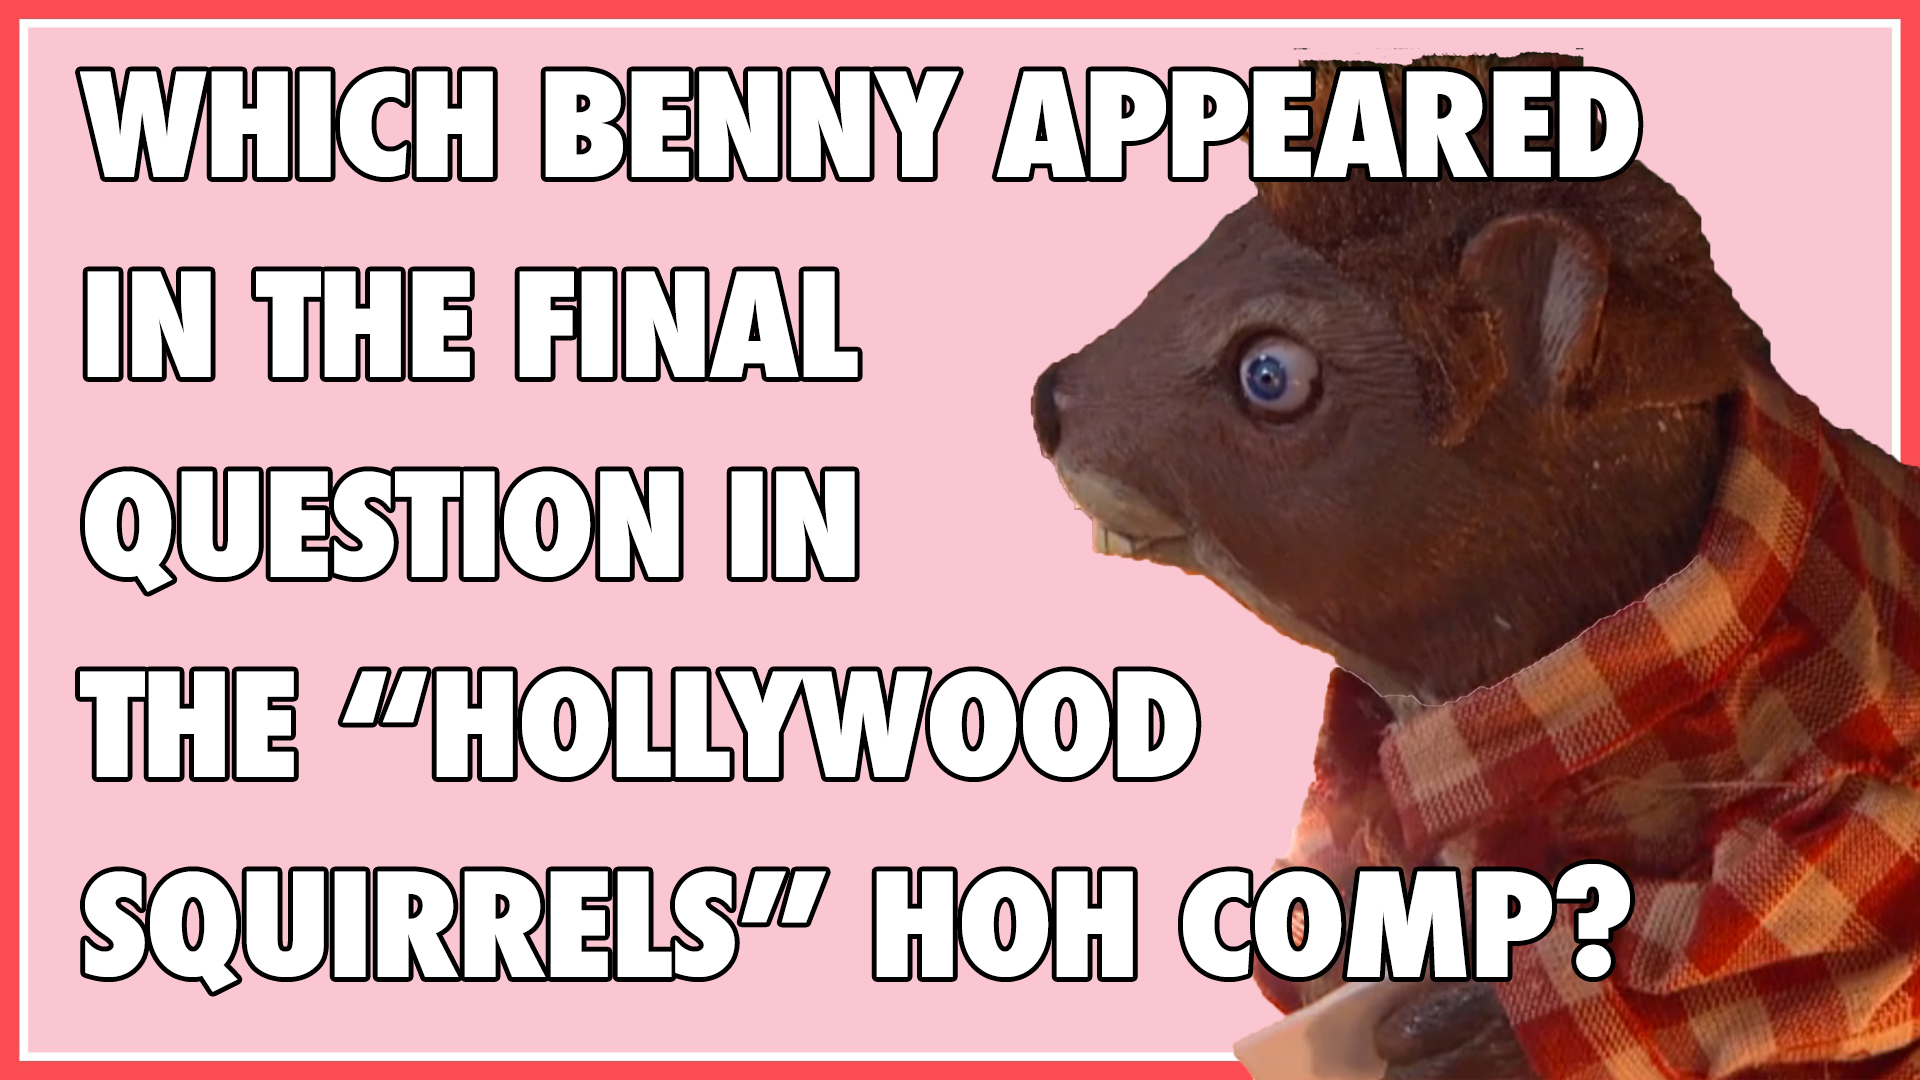 Which Benny appeared in the final question in the